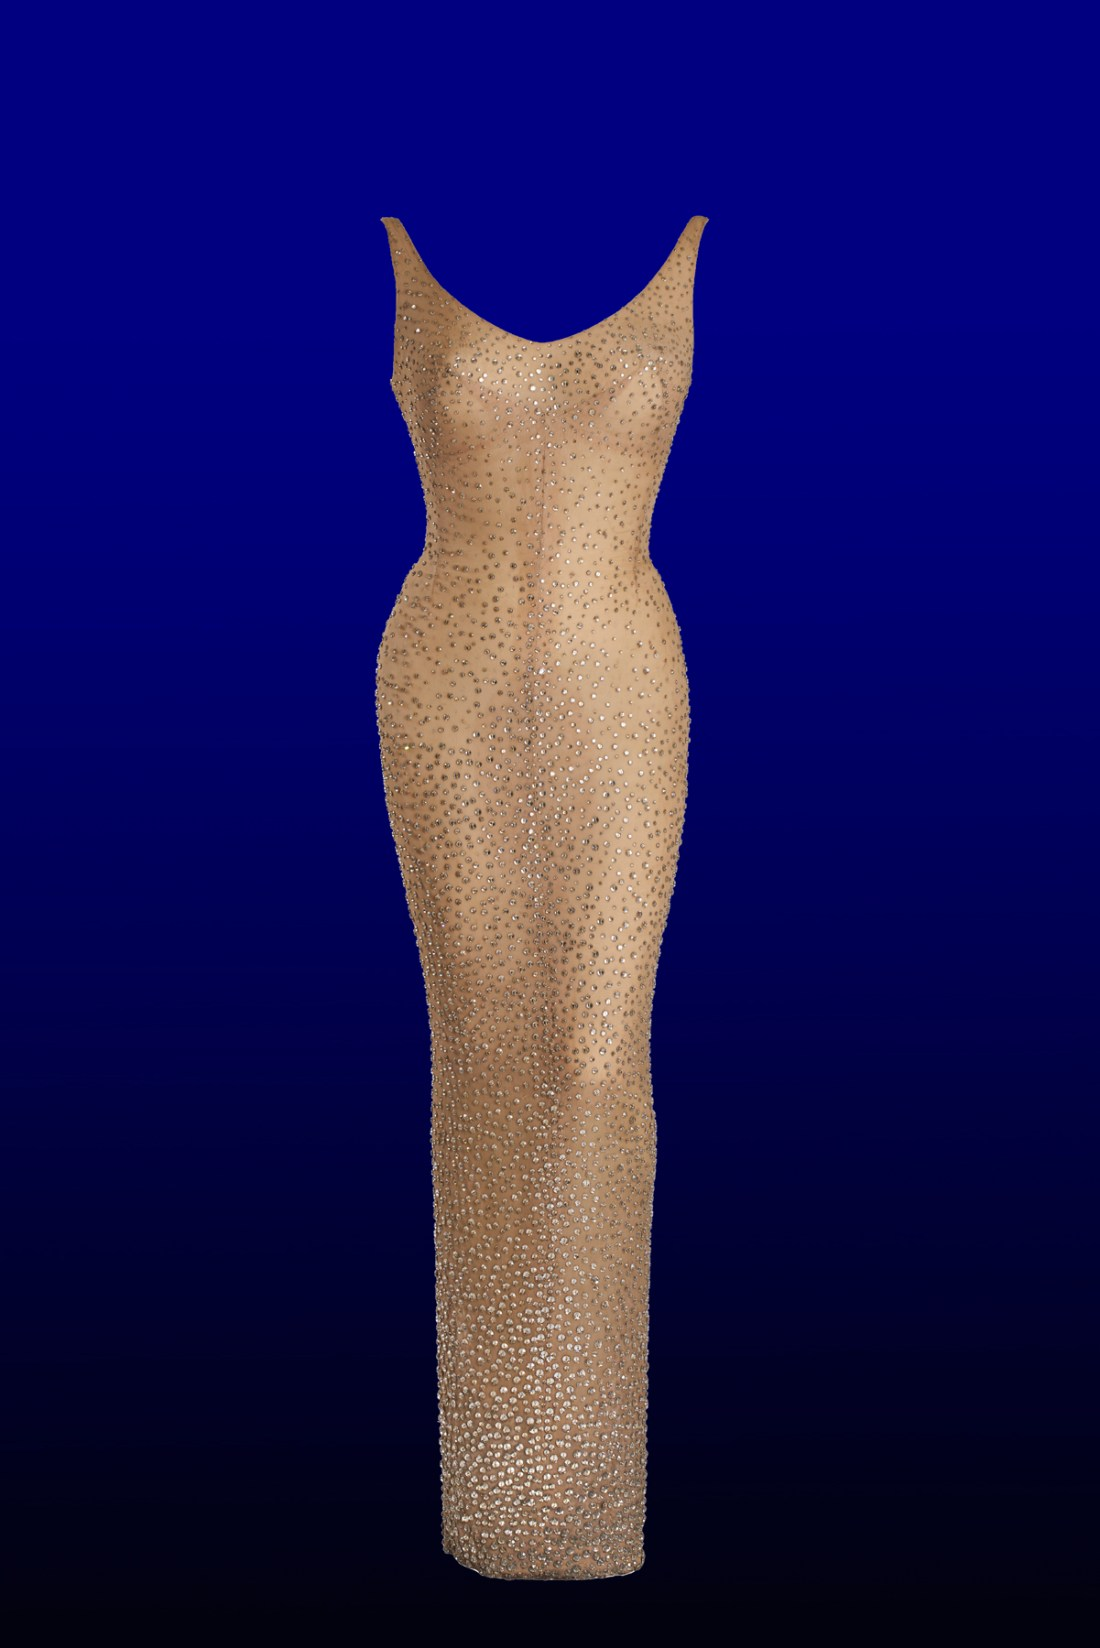 Marilyn Monroe's Happy Birthday Mr. President dress is flesh-colored and covered with 2,500 crystals that were hand-sewn on.